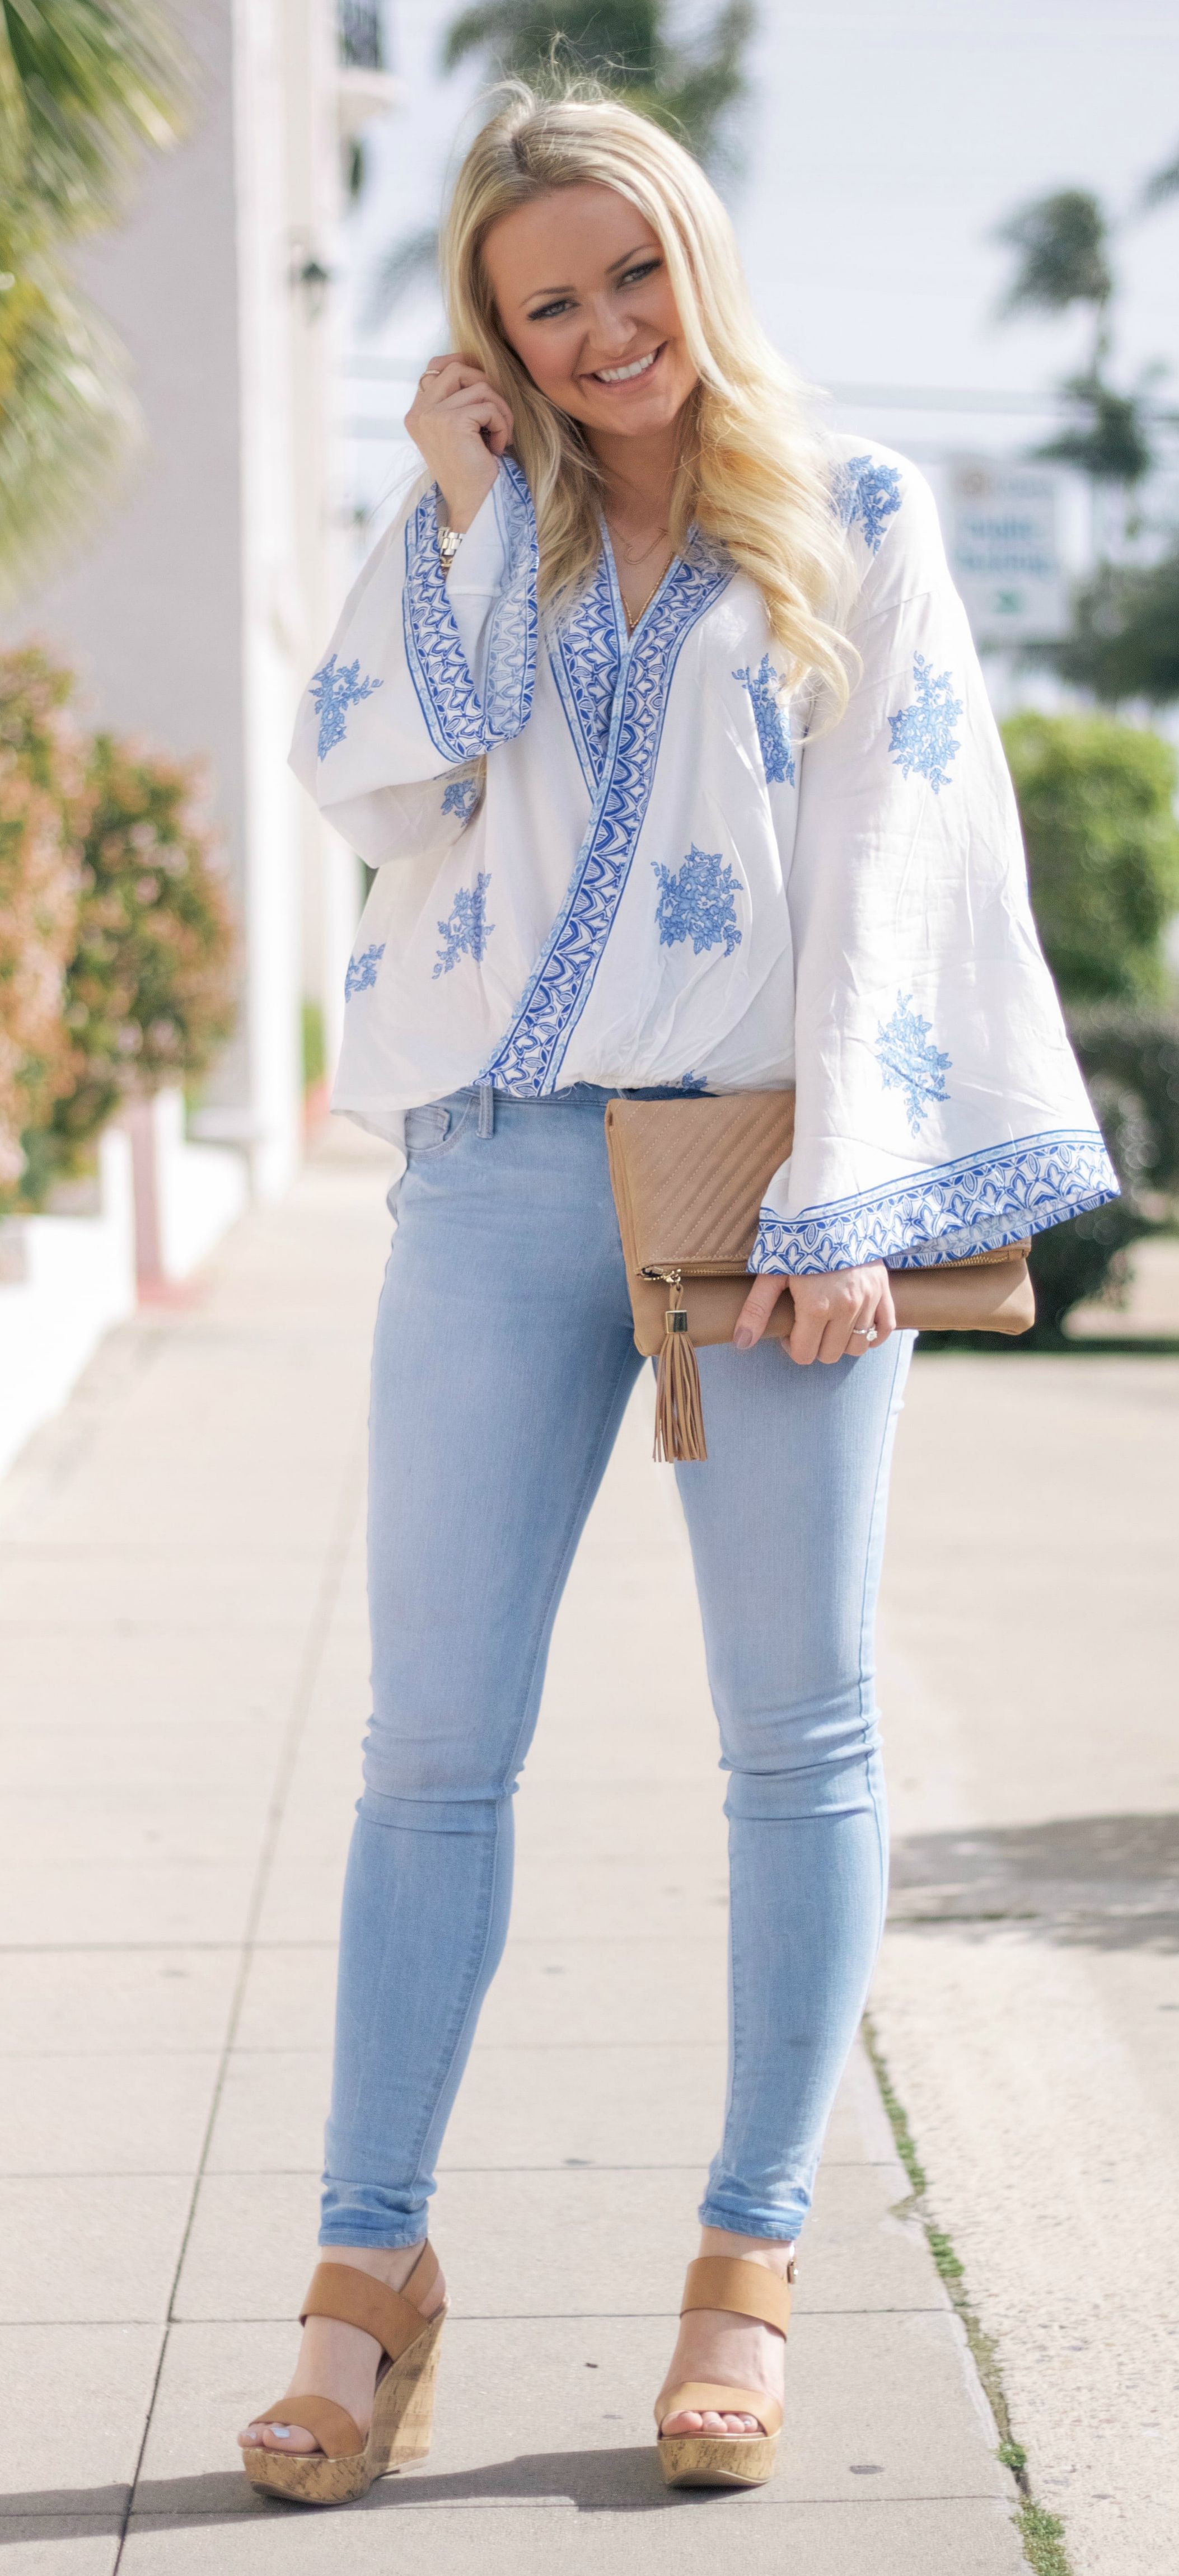 inspired by: greece outfit idea | greece outfit, vacation outfits